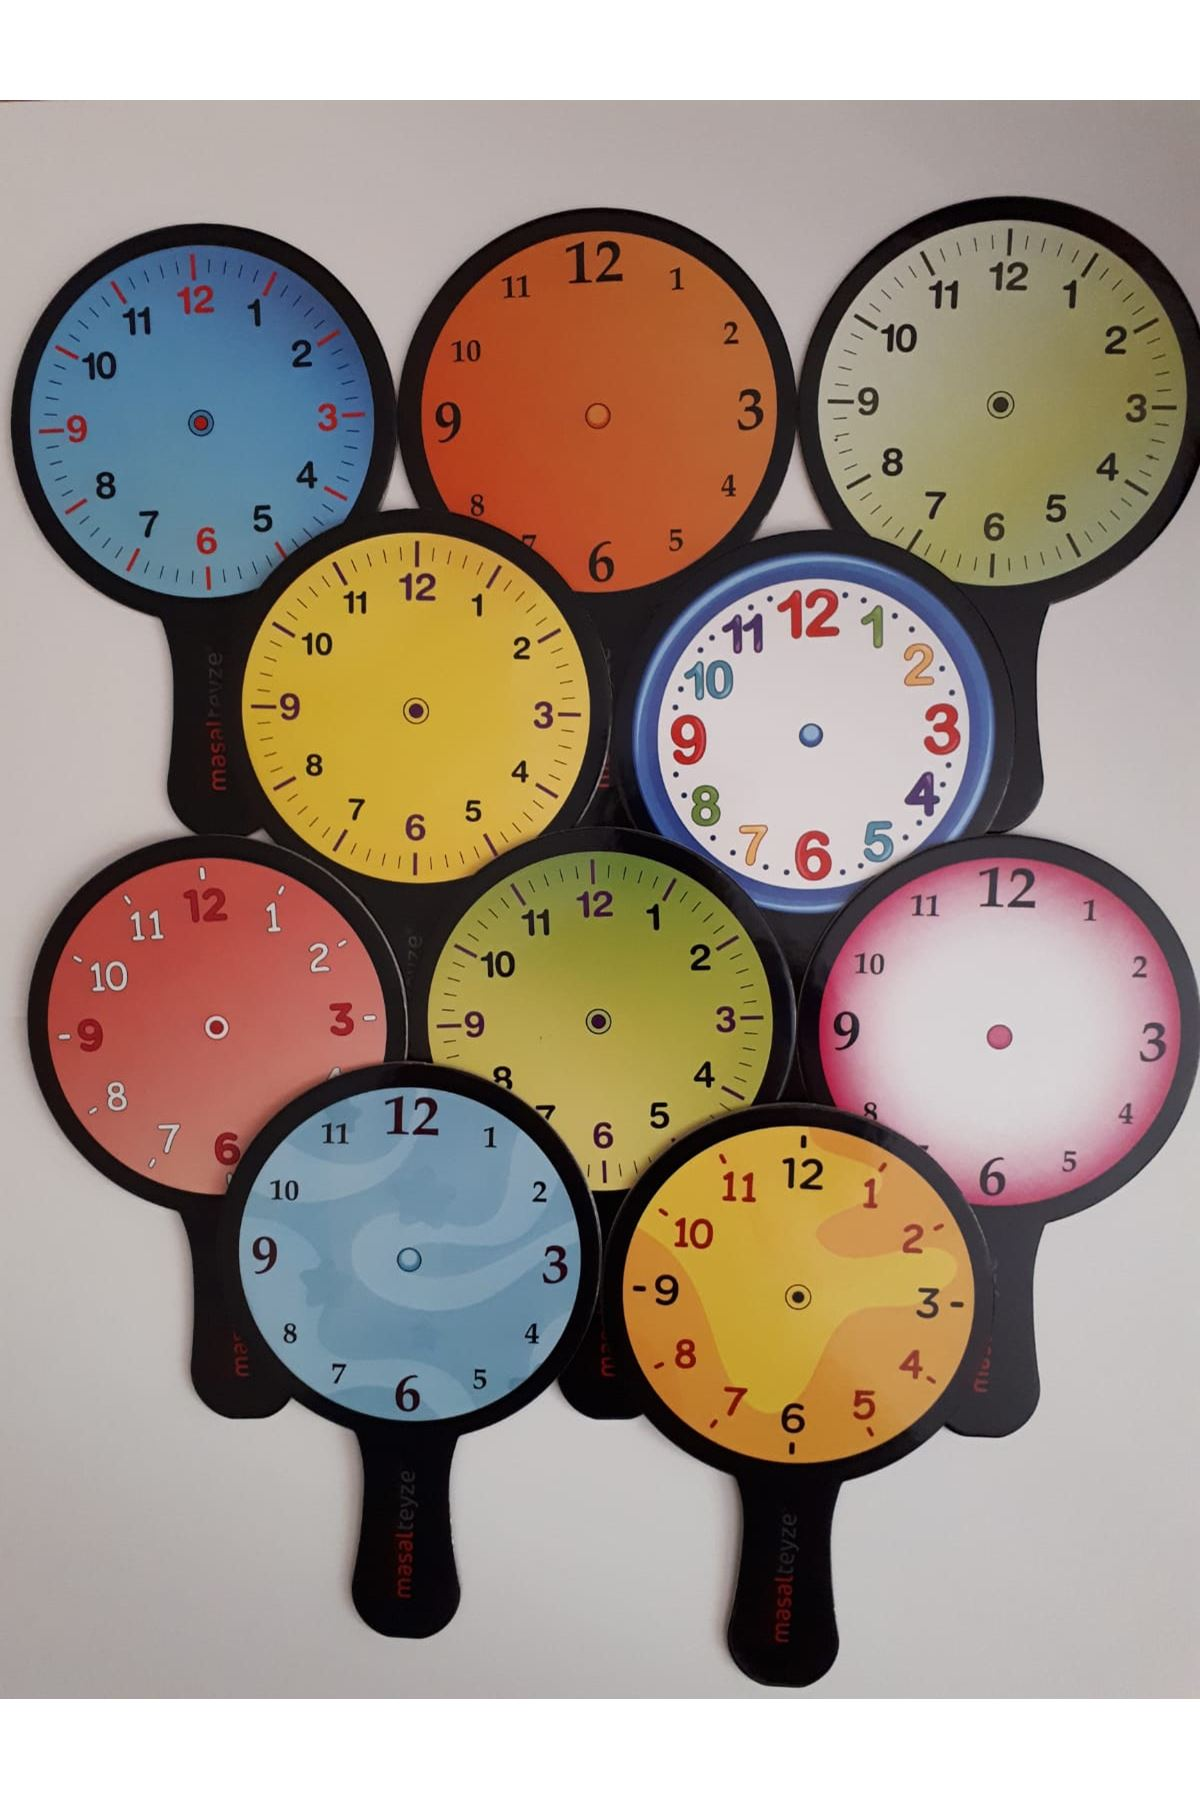 TimeBoards